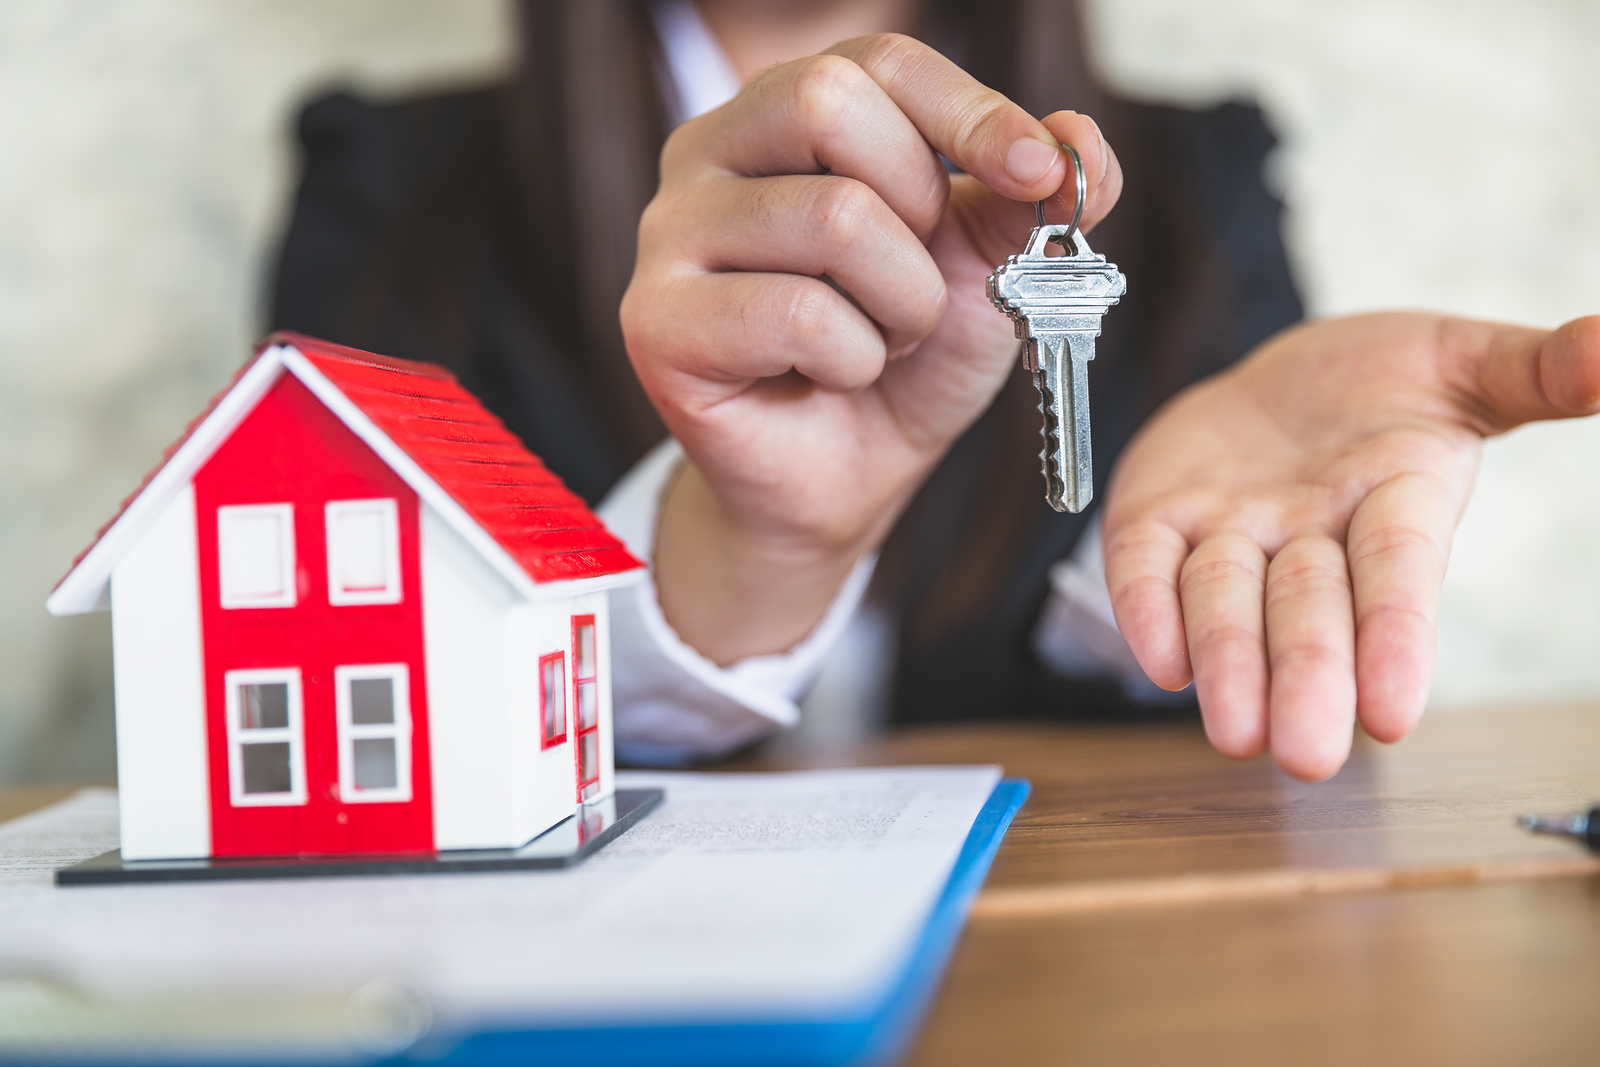 3 FAQs about selling a home & the answers you need